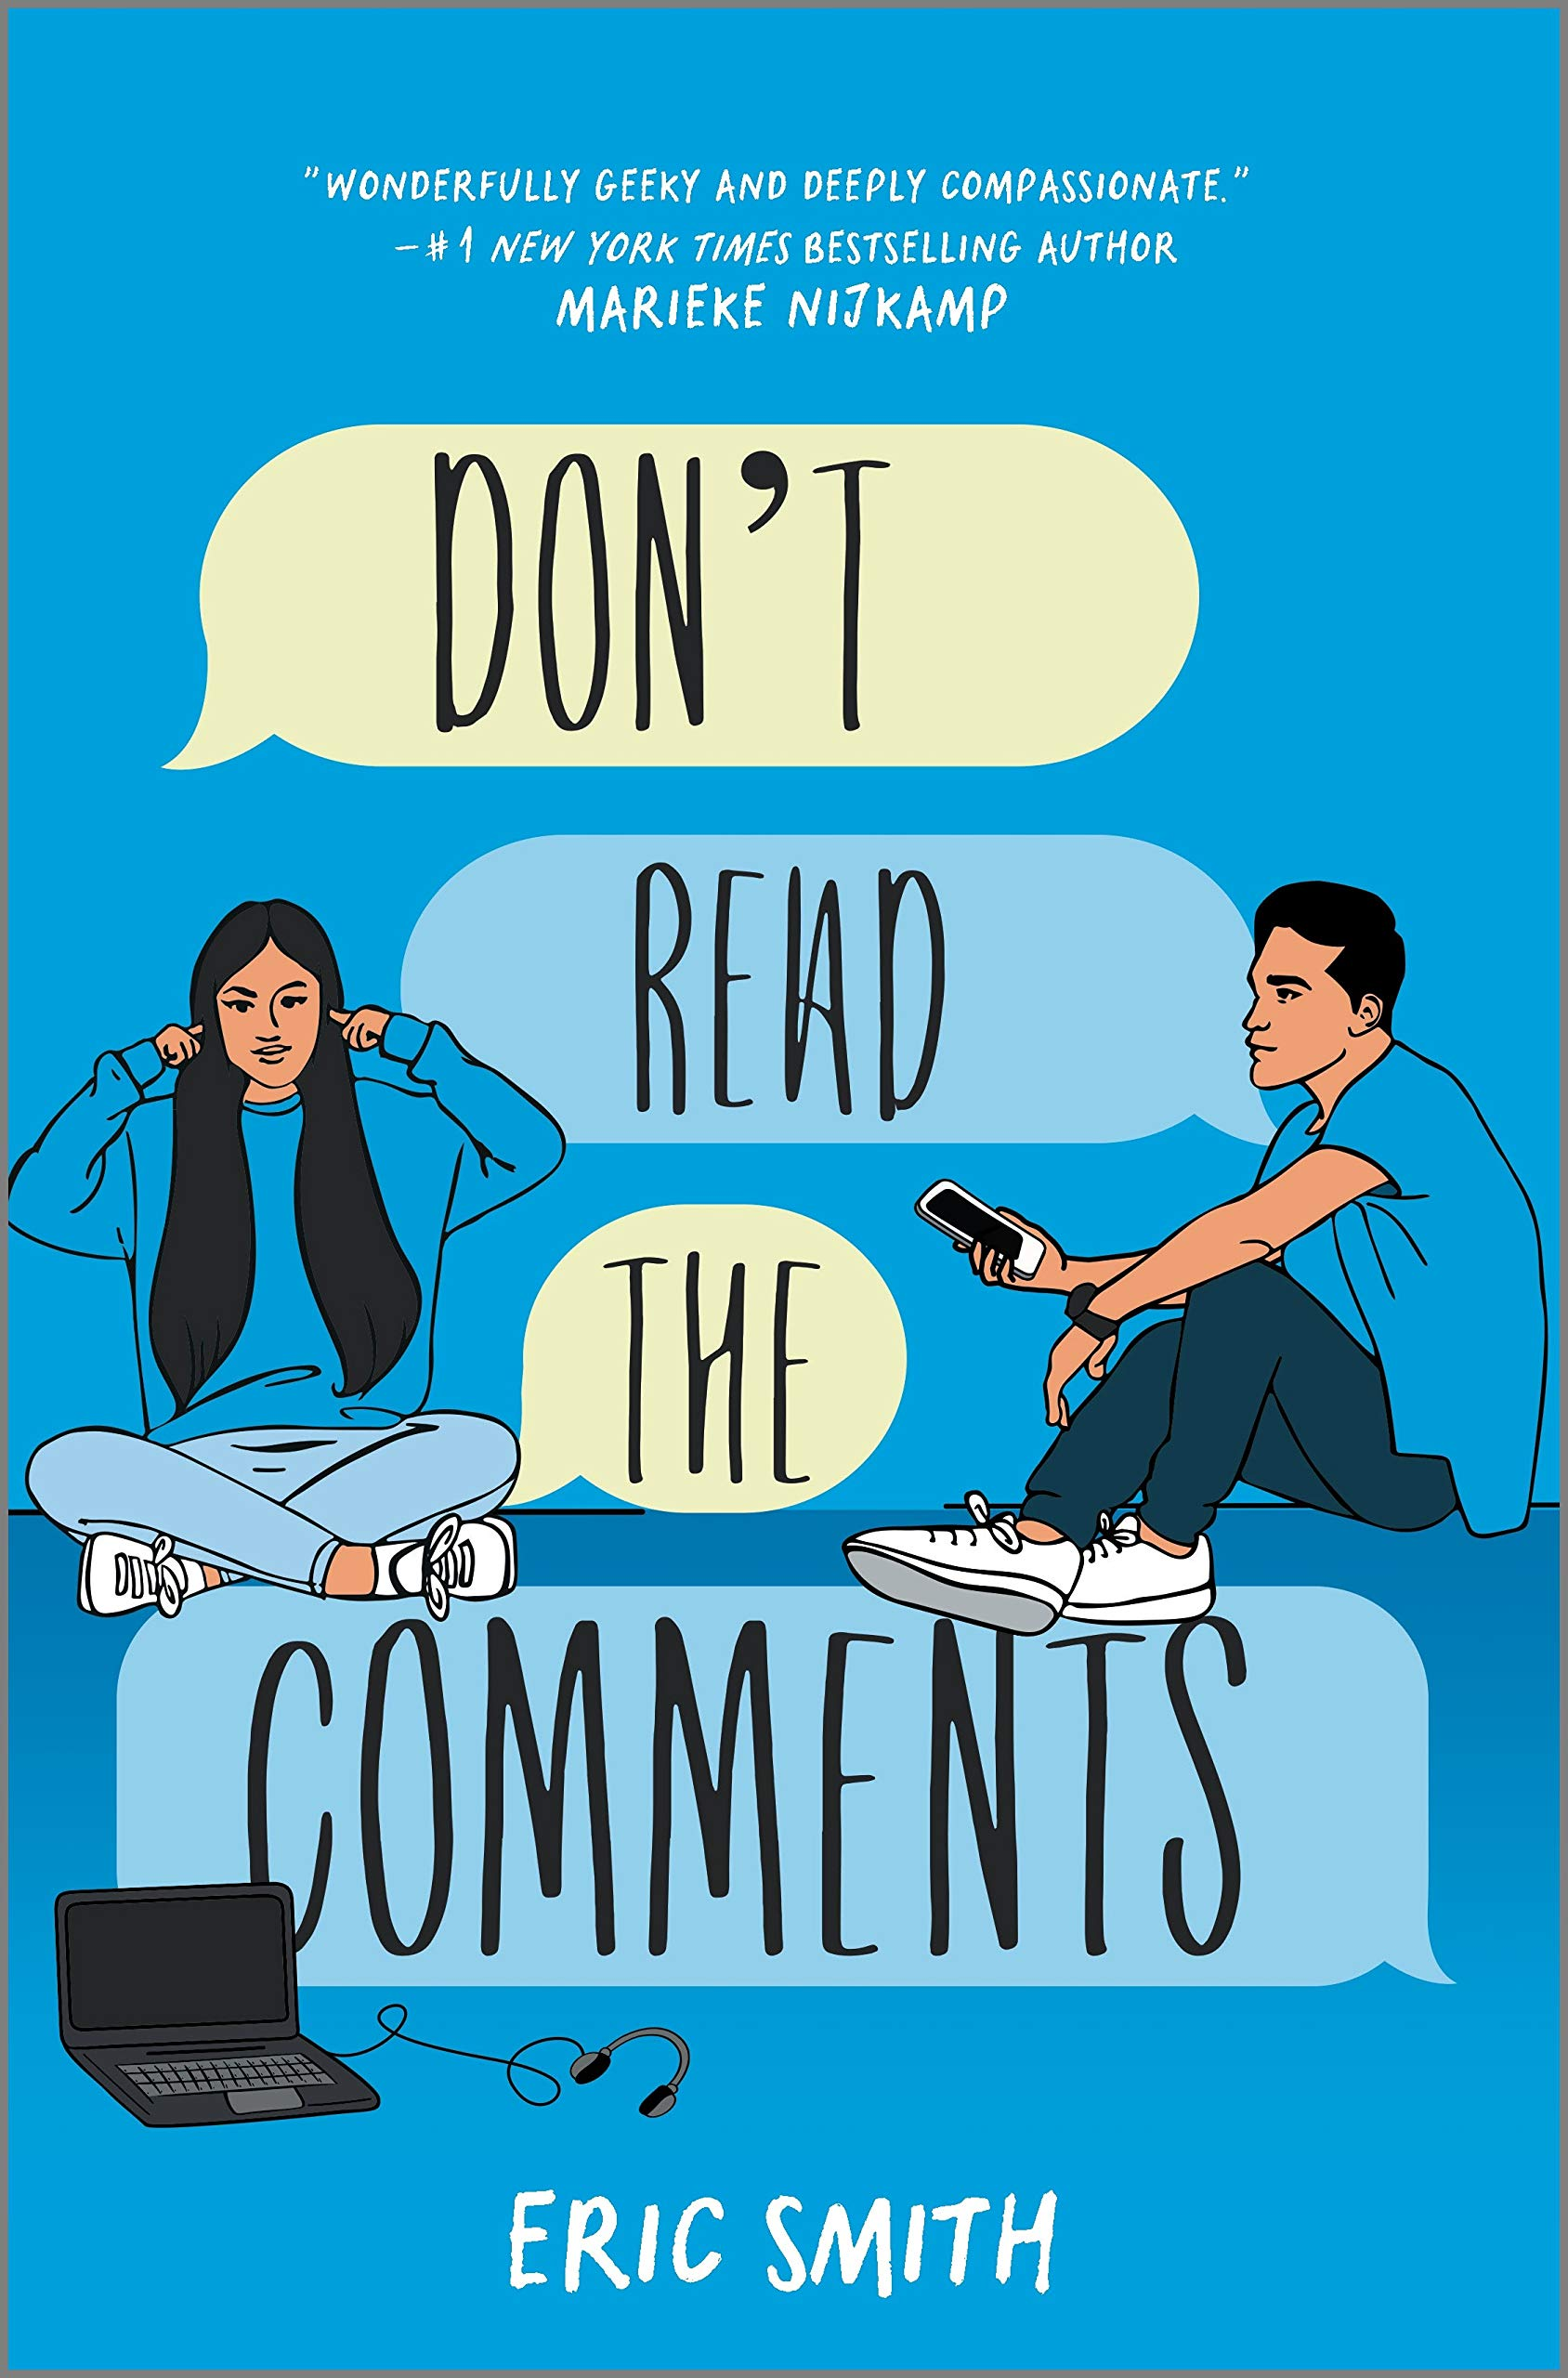 Amazon.com: Don't Read the Comments (9781335016027): Smith, Eric: Books